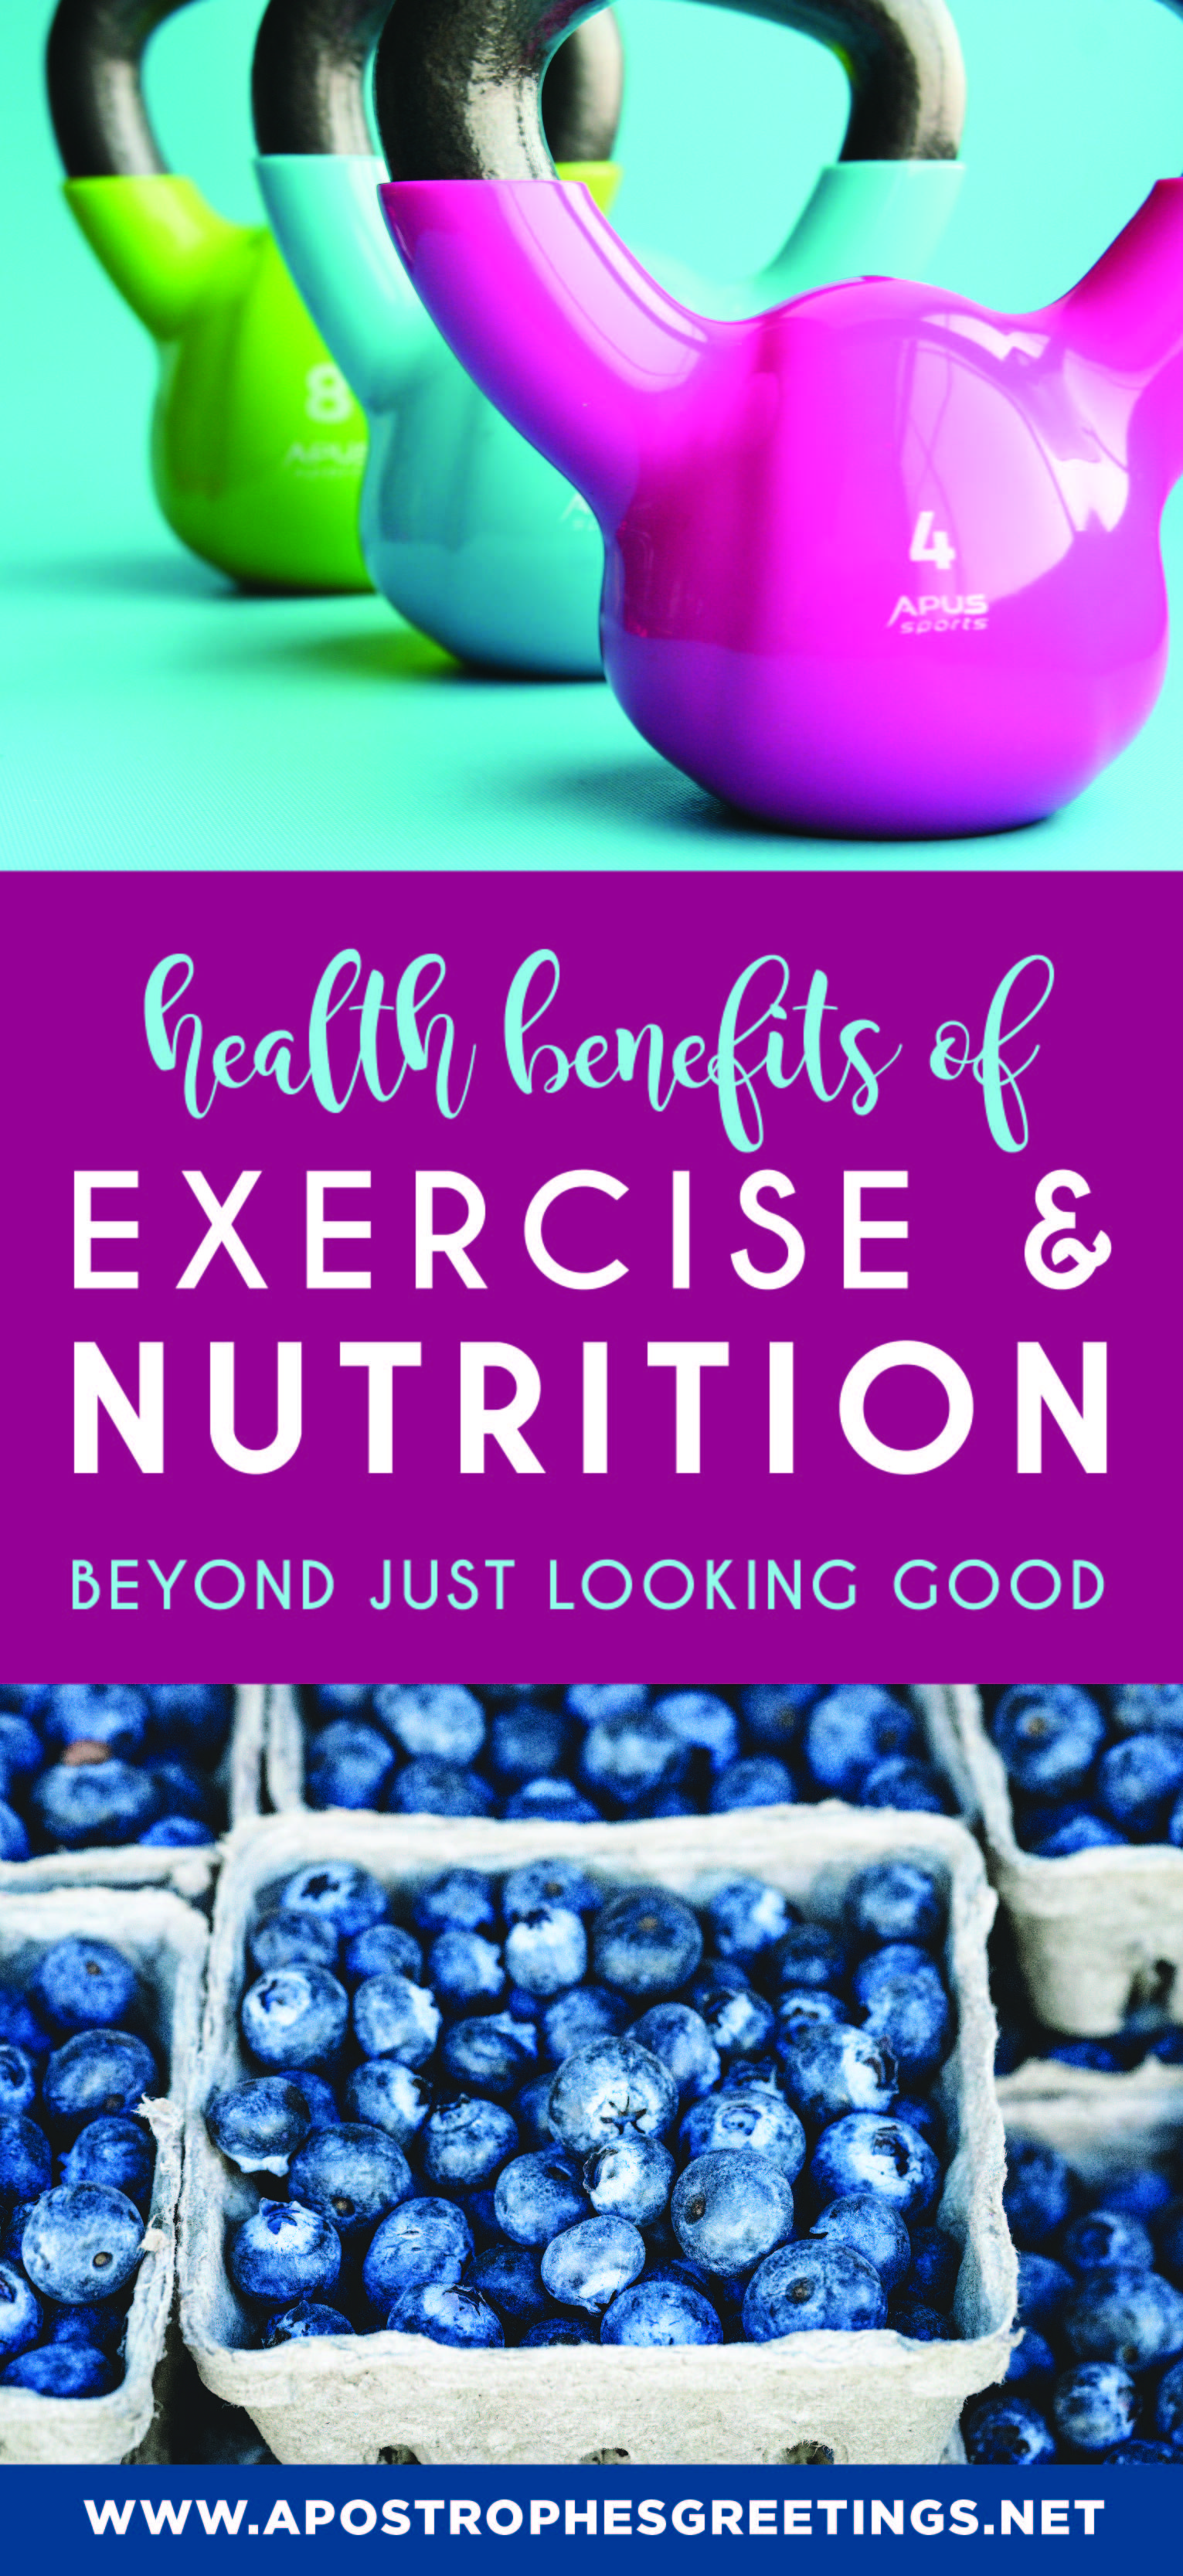 Health Benefits of Exercise and Nutrition beyond just looking good